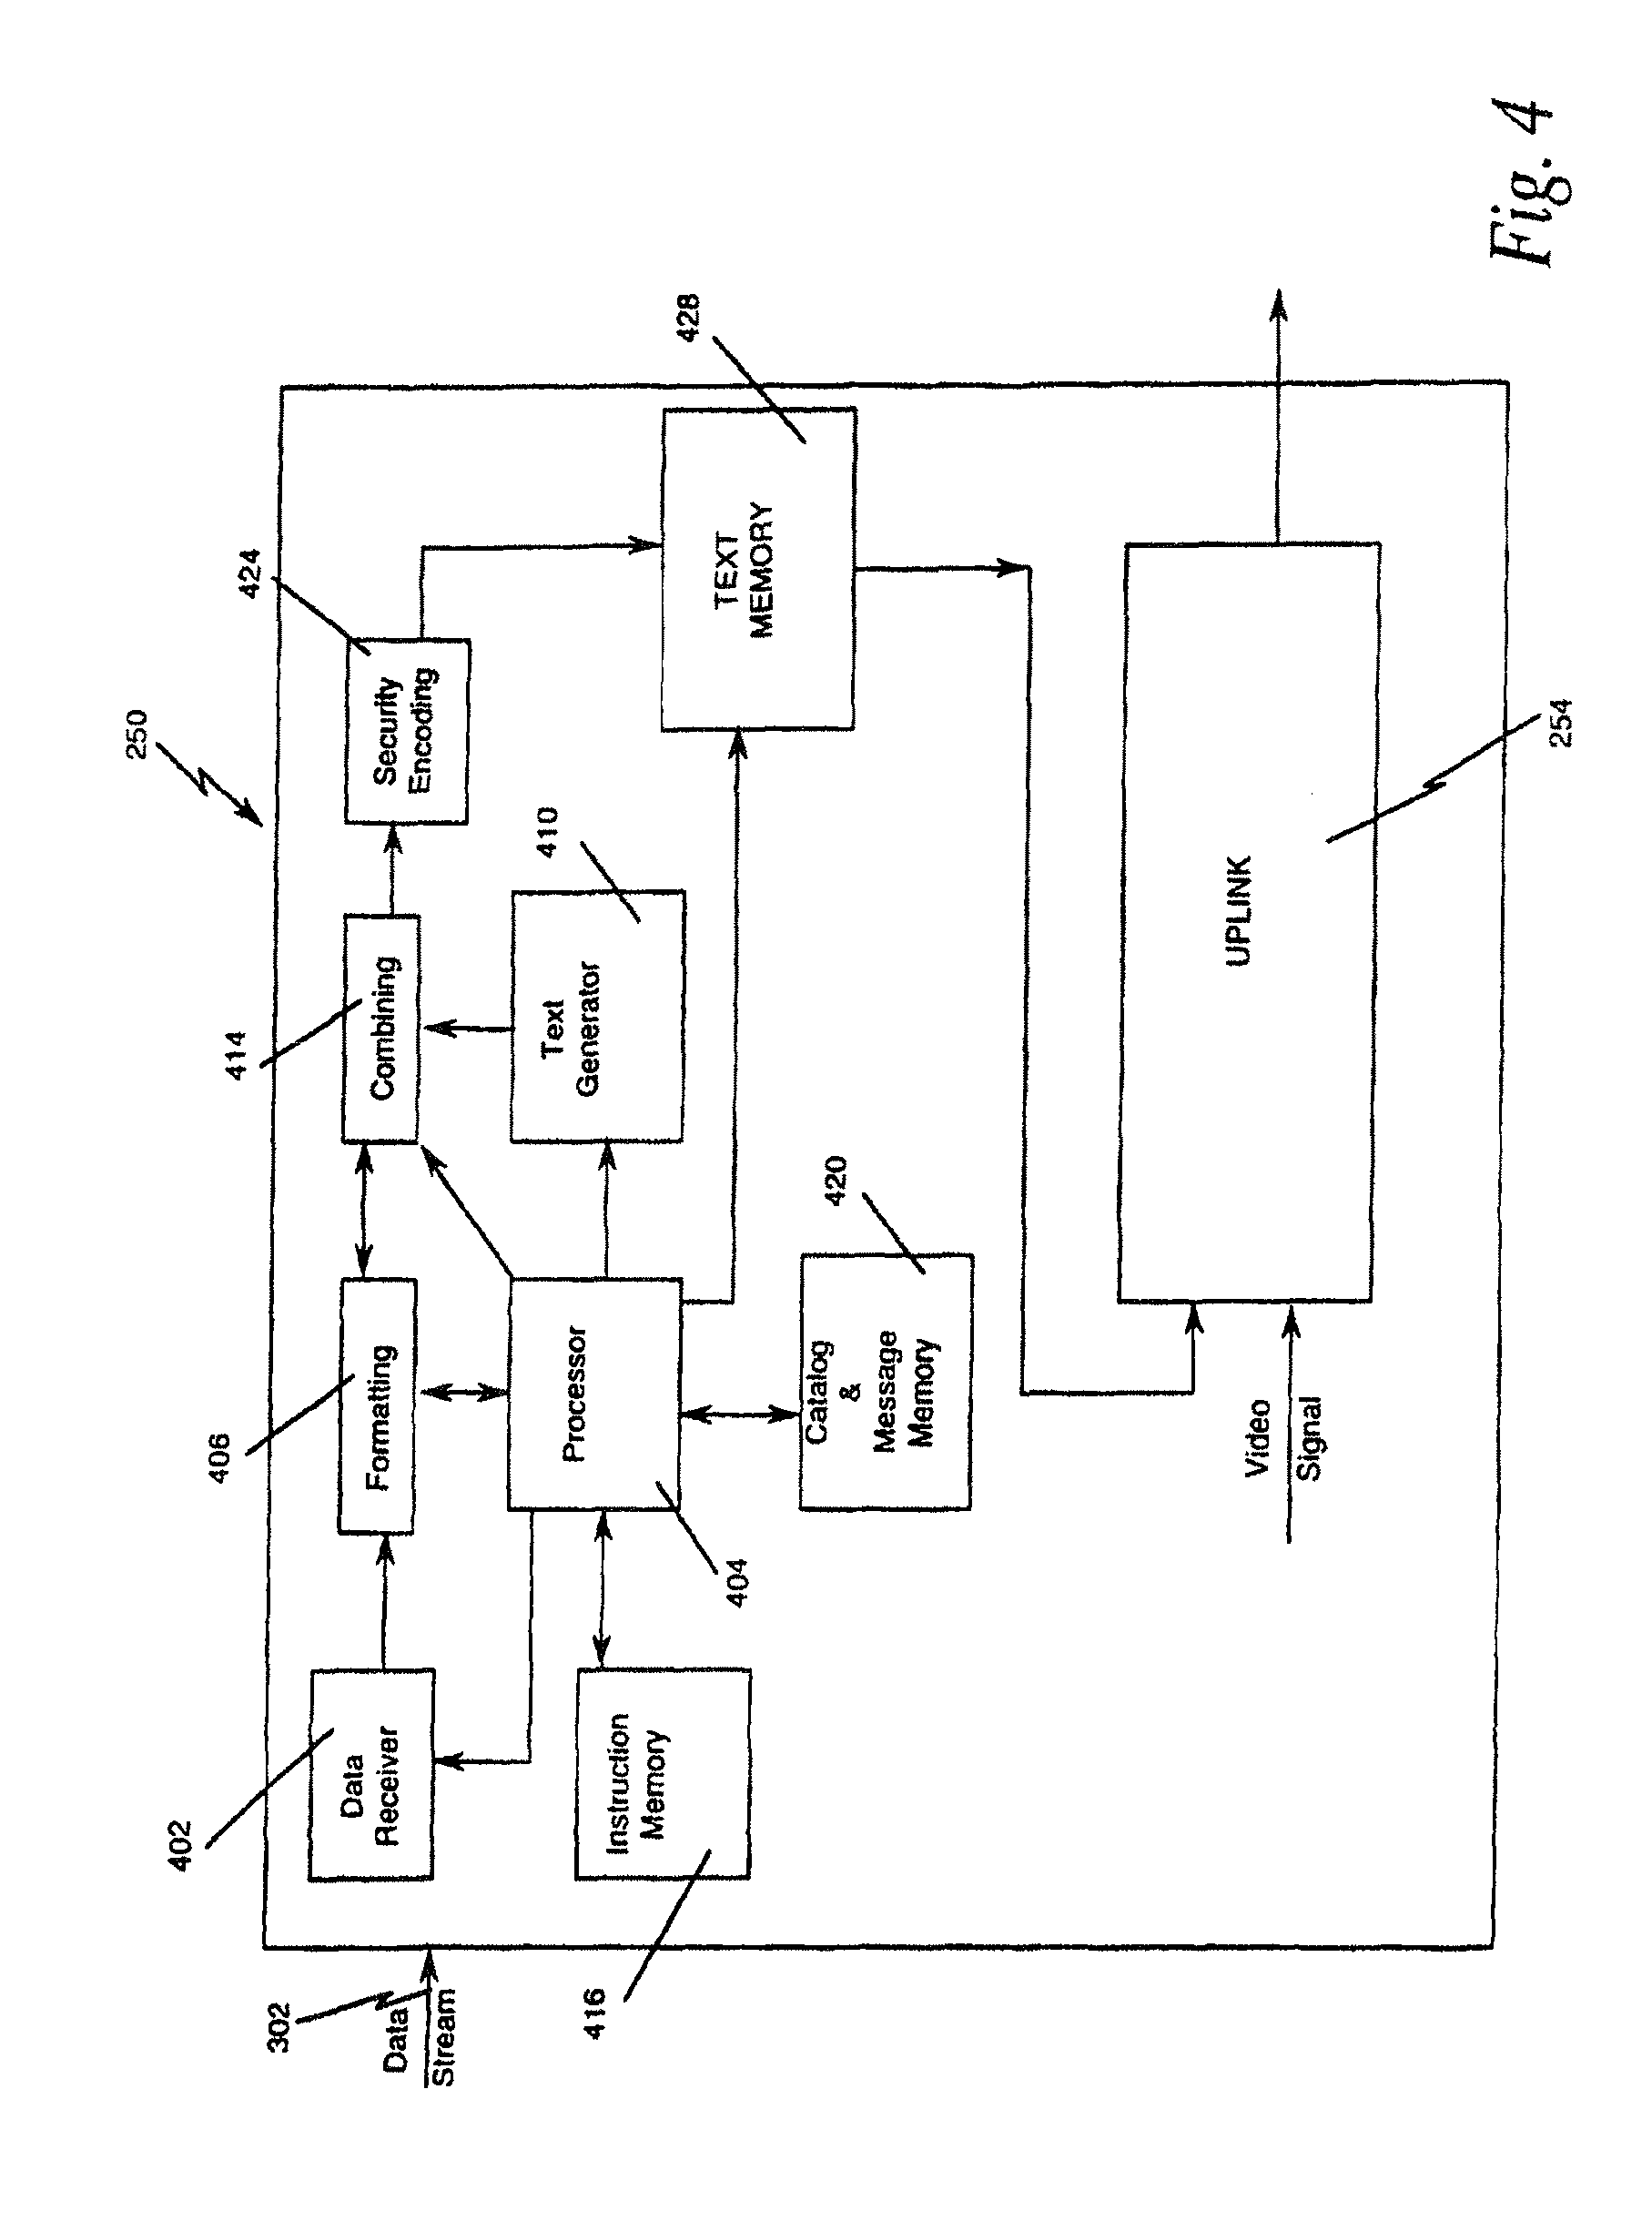 Circuits zone 187 1001 electronic project circuits - Patent Drawing